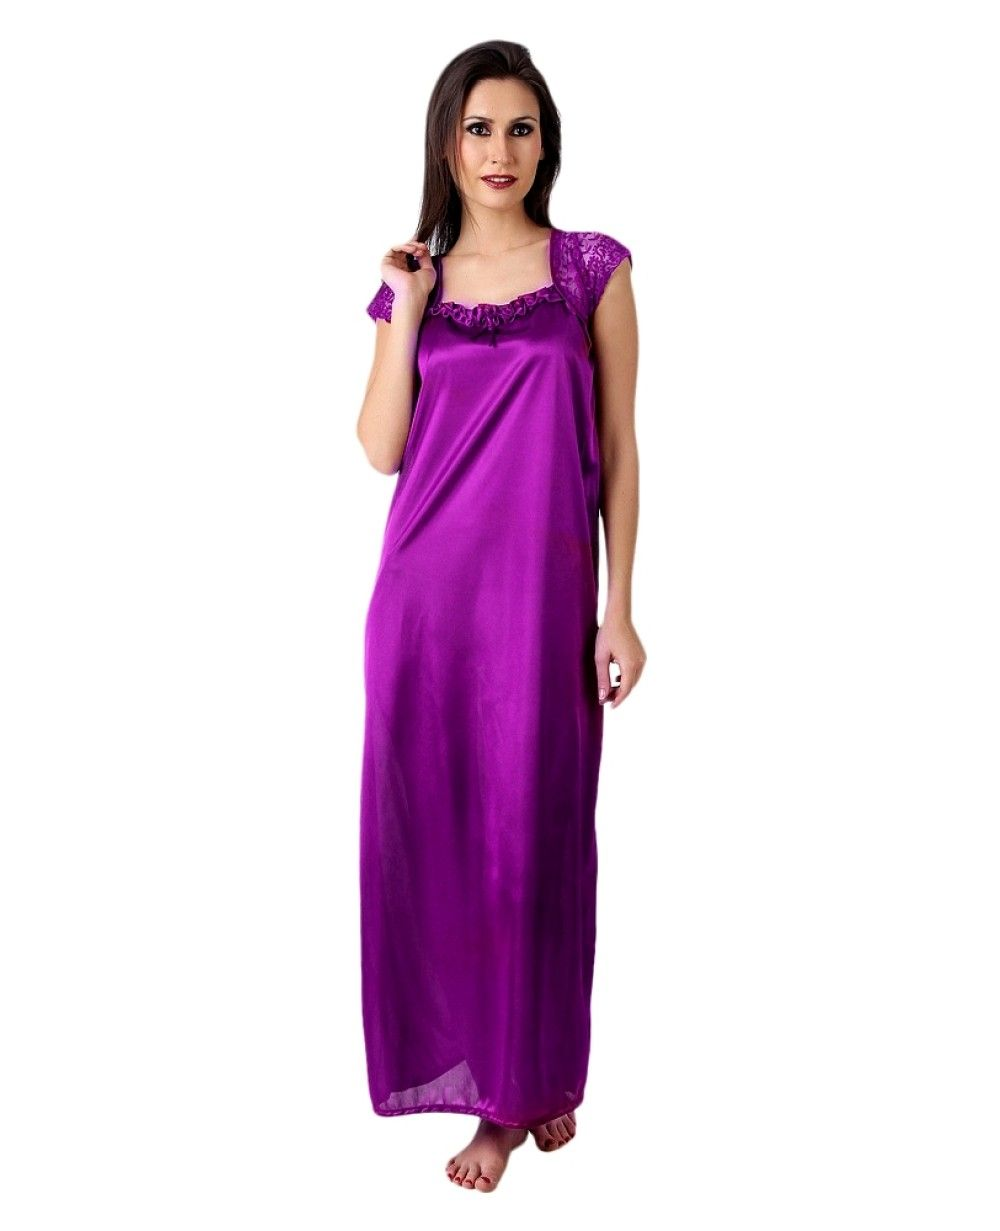 3b5a4bd382 Women Satin Dark Purple Color One Piece Nighty, Night Suit, Night dress  #nightwear #lingerie #sexynightwear #nightdress